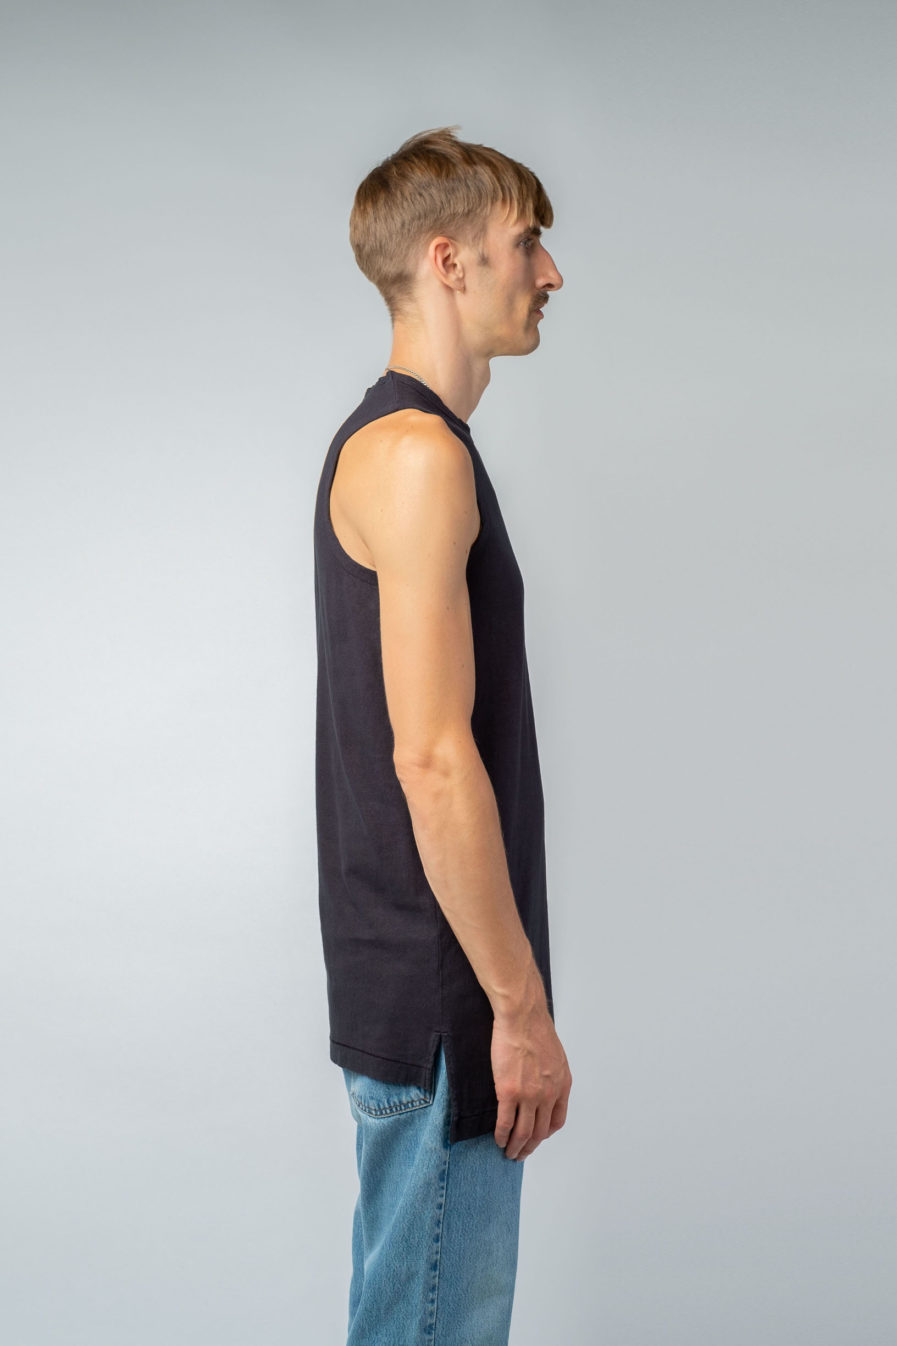 MAN unisex singlet tanktop hemp organic cotton MALIK Carbon black side